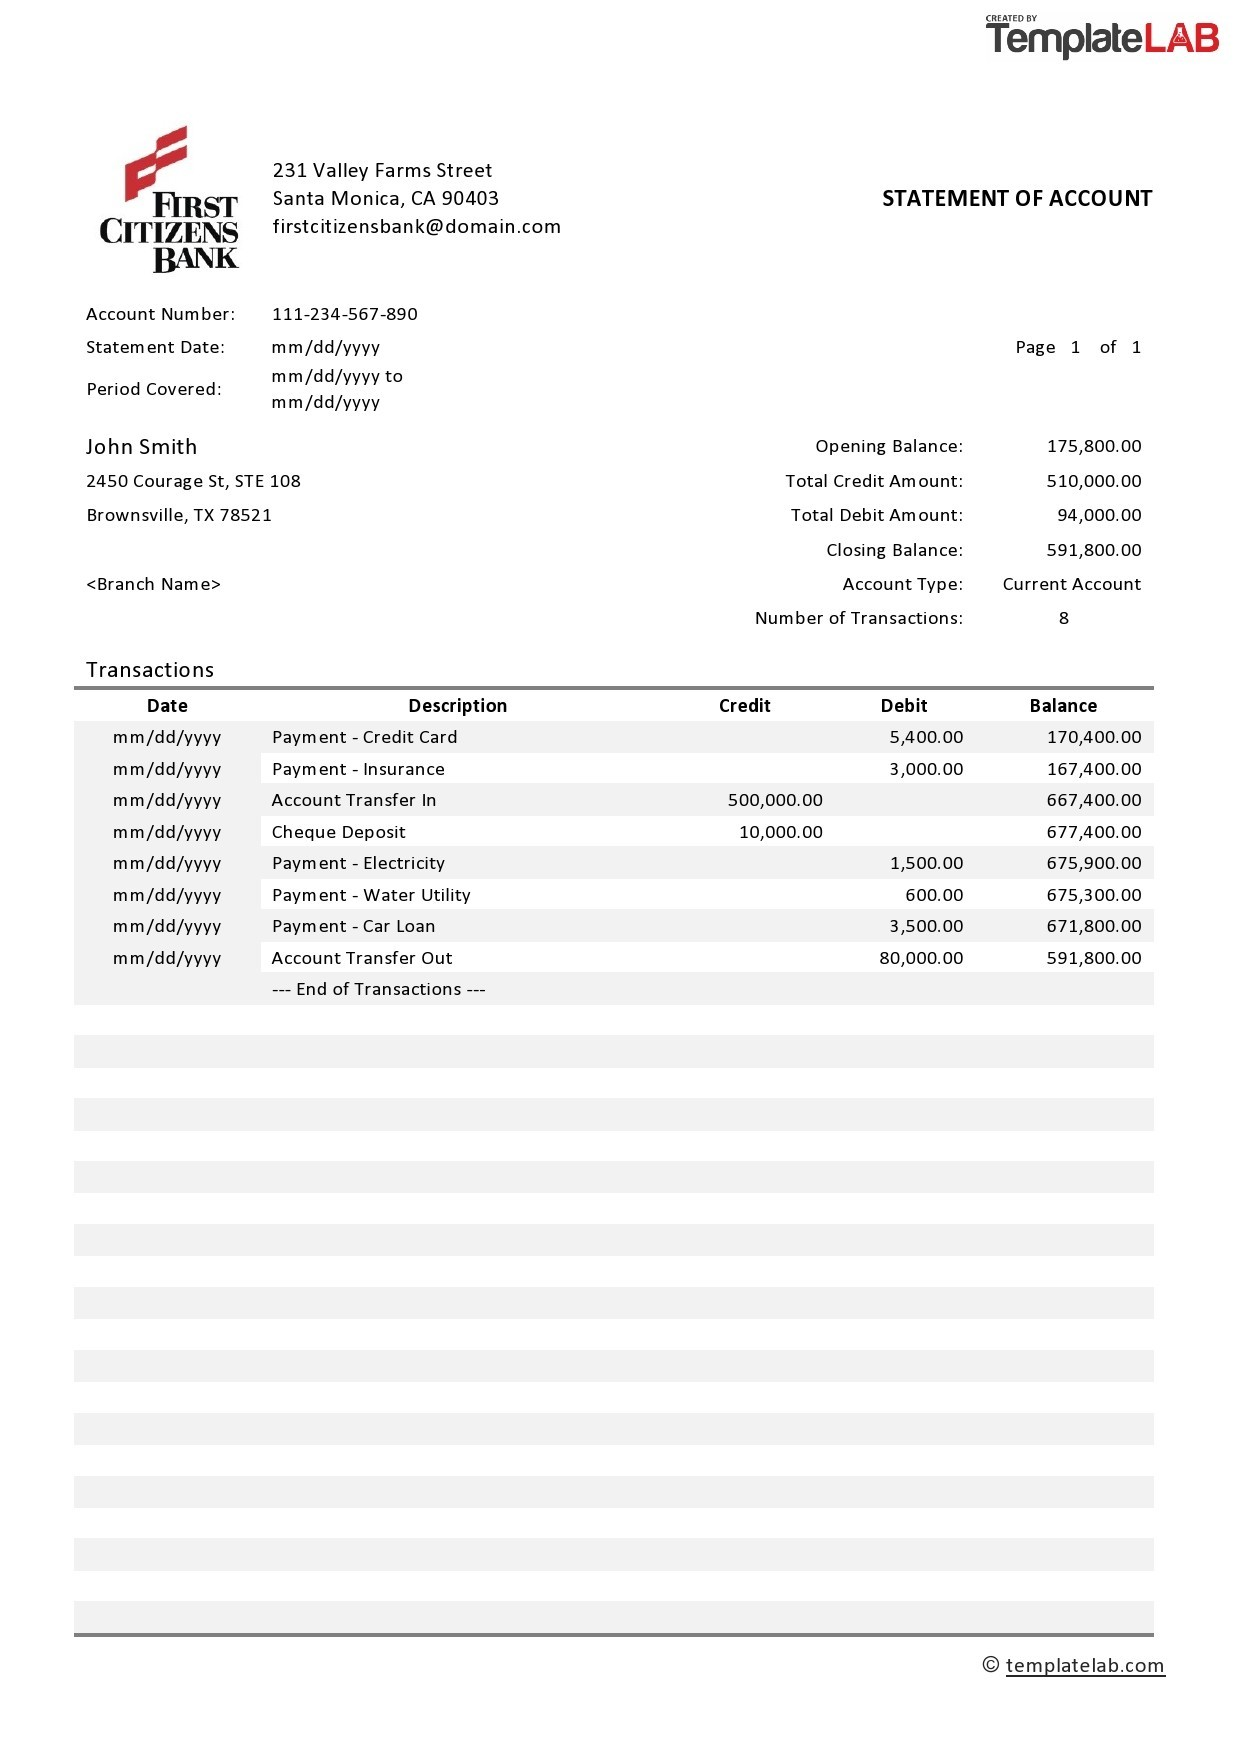 Free Bank Statement Template 1 - TemplateLab